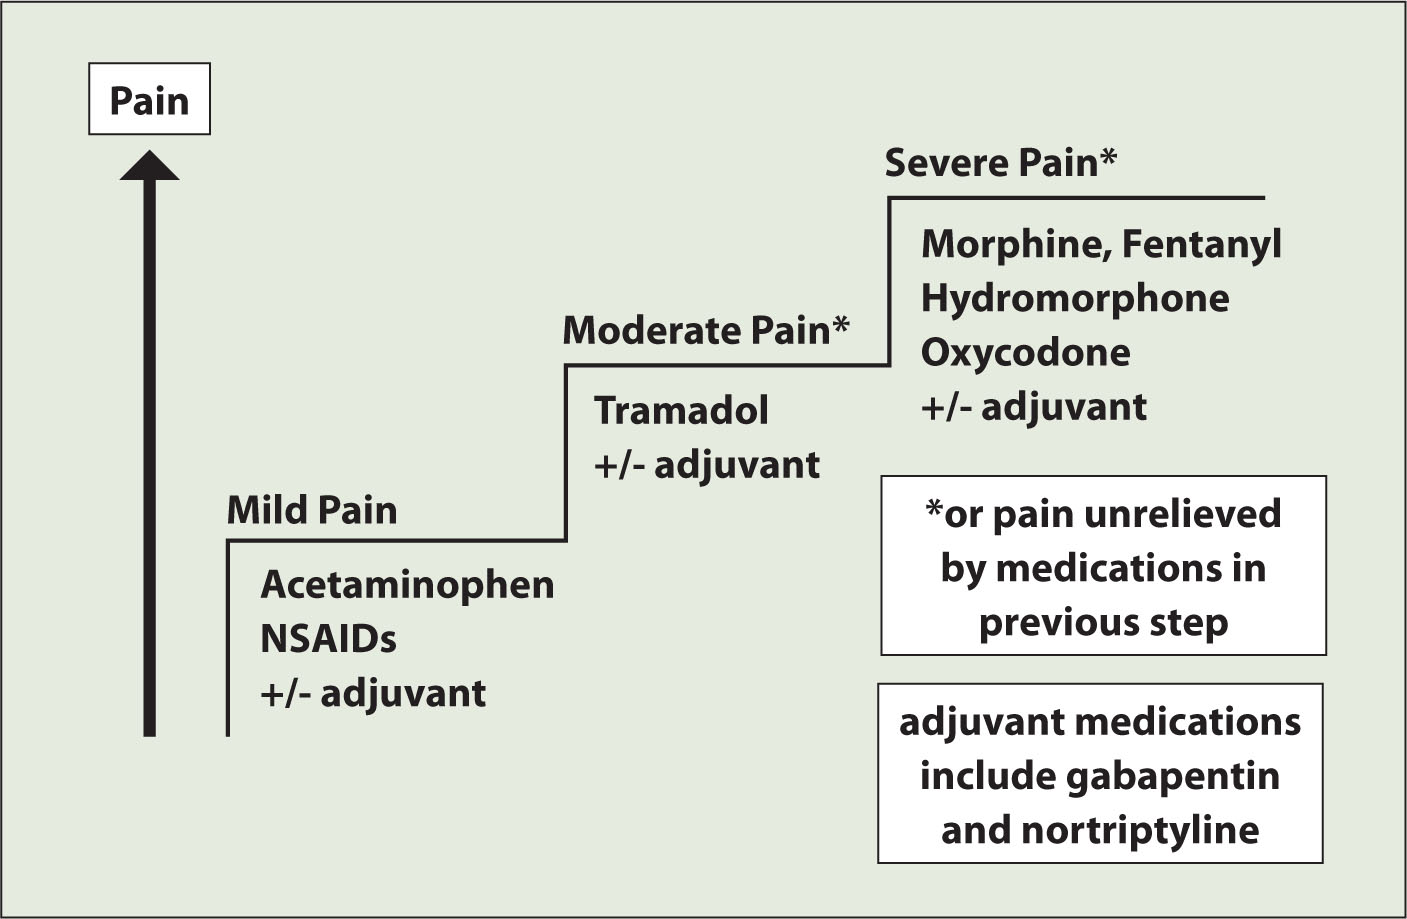 World Health Organization Pain Ladder.